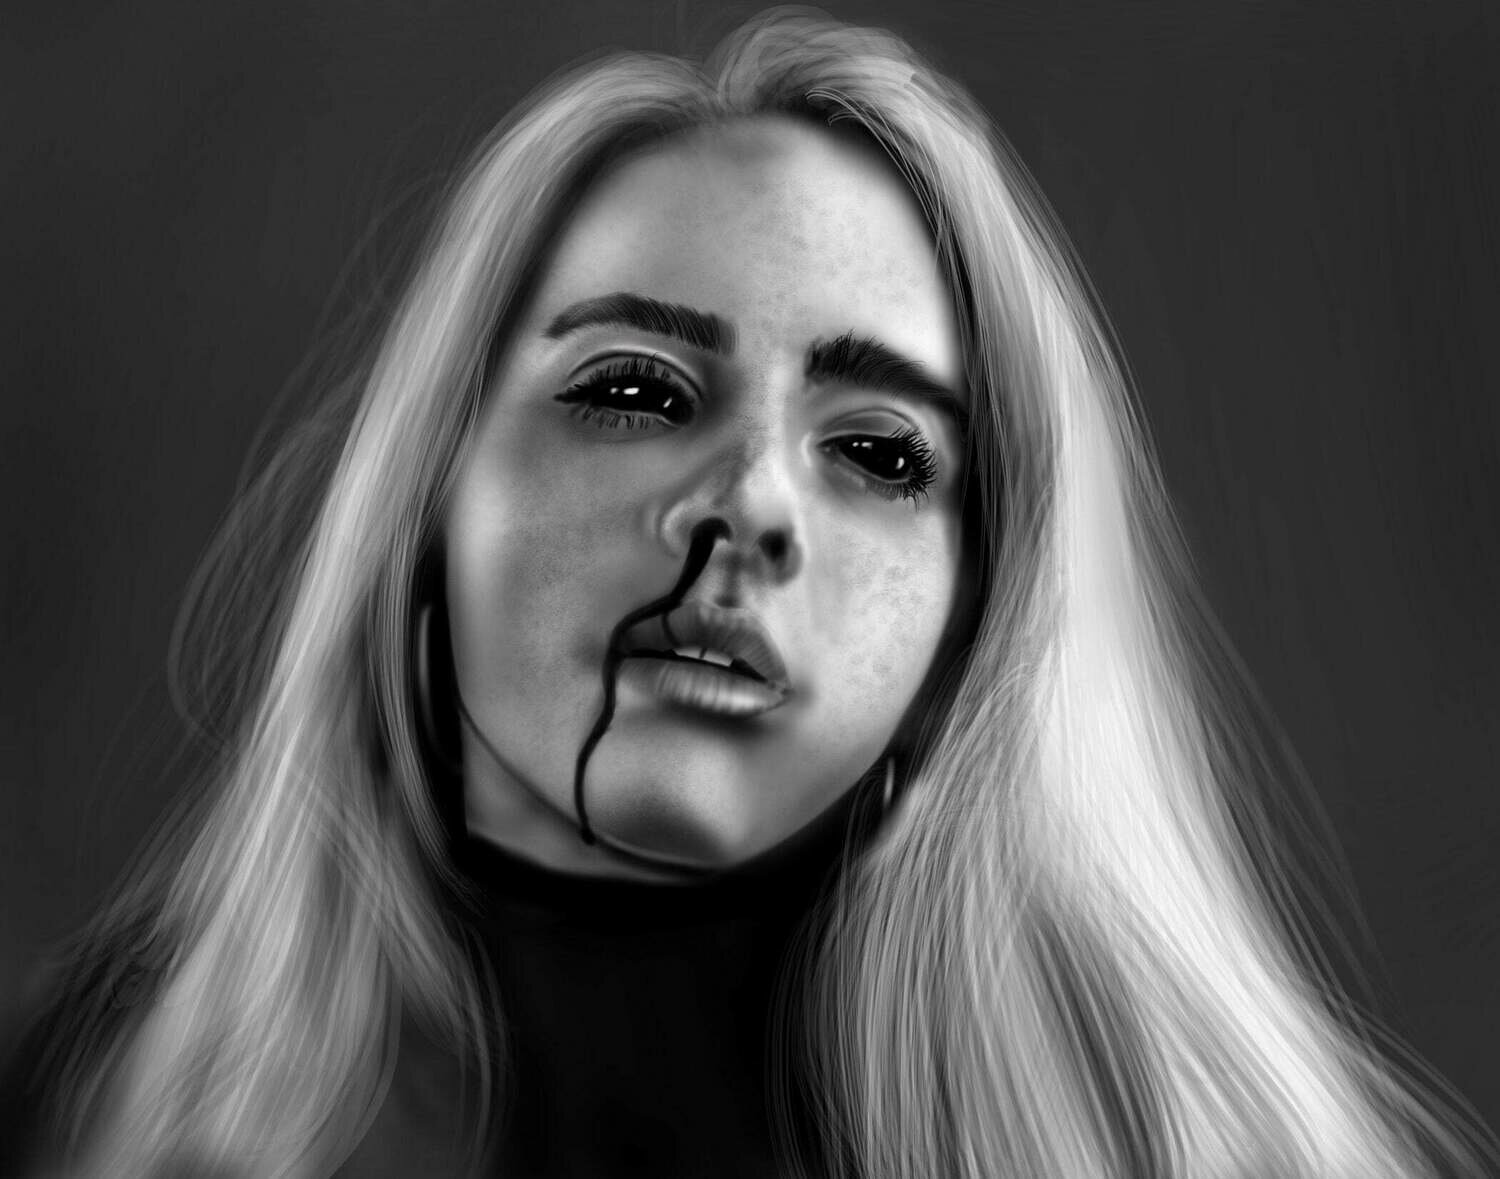 Billie Eilish (creepy version) Portrait Art Print